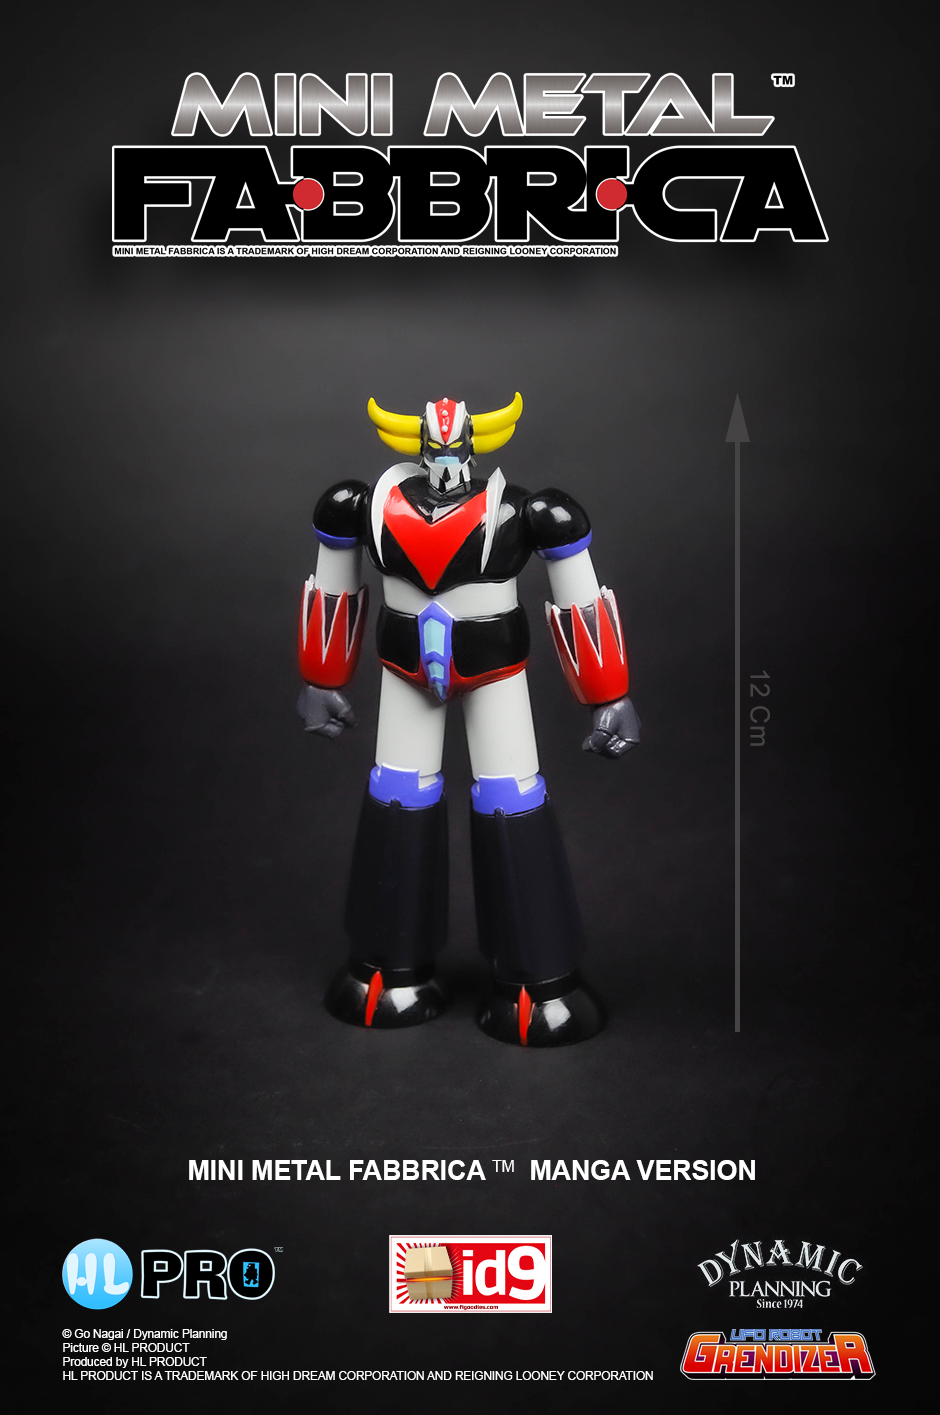 hlpro grendizer mangaversion